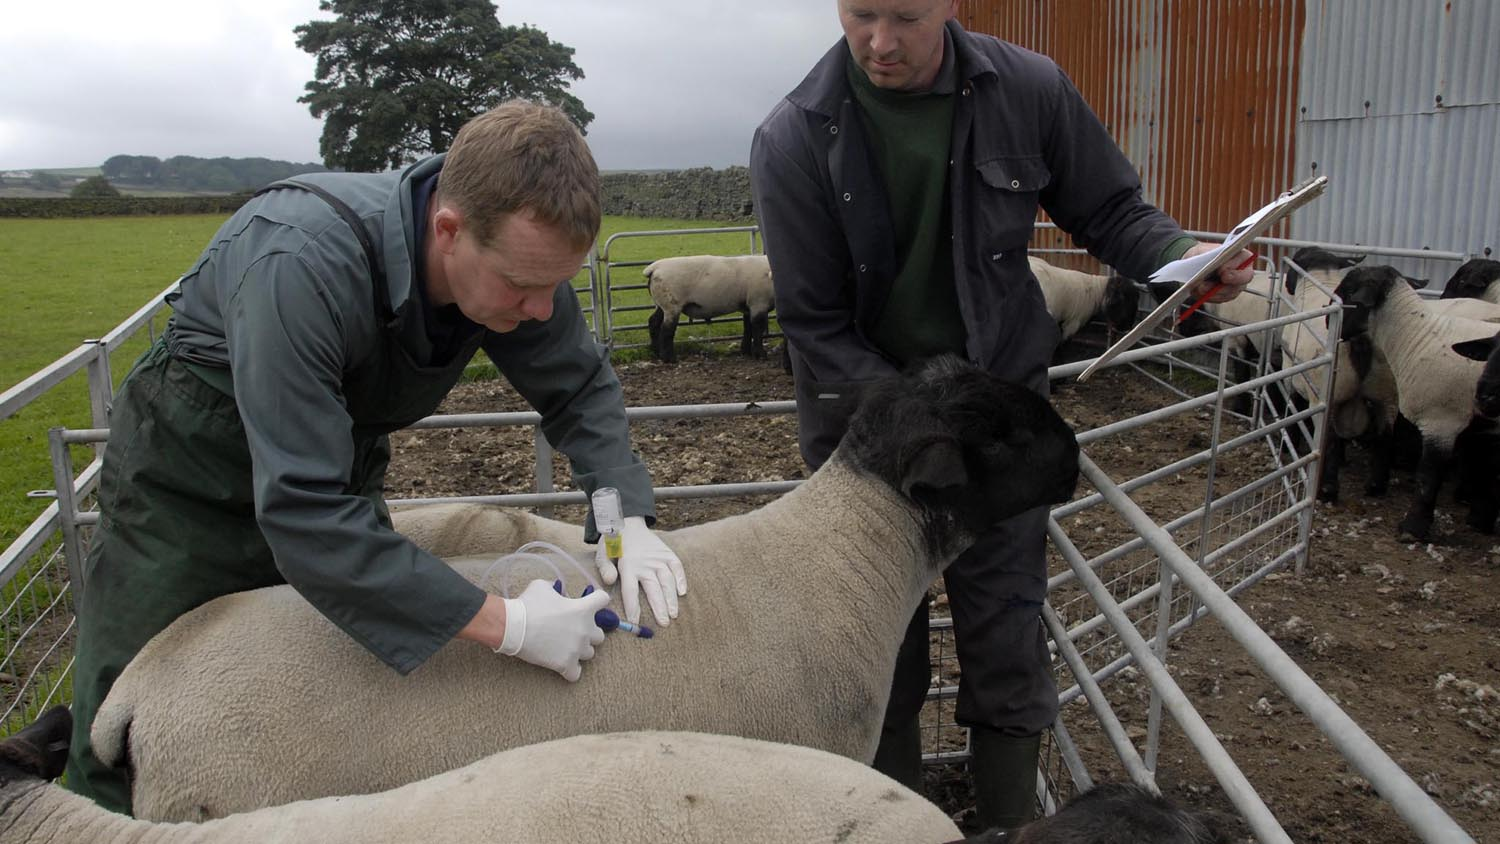 'Watch this space' - Farmers warned risk of bluetongue recirculating